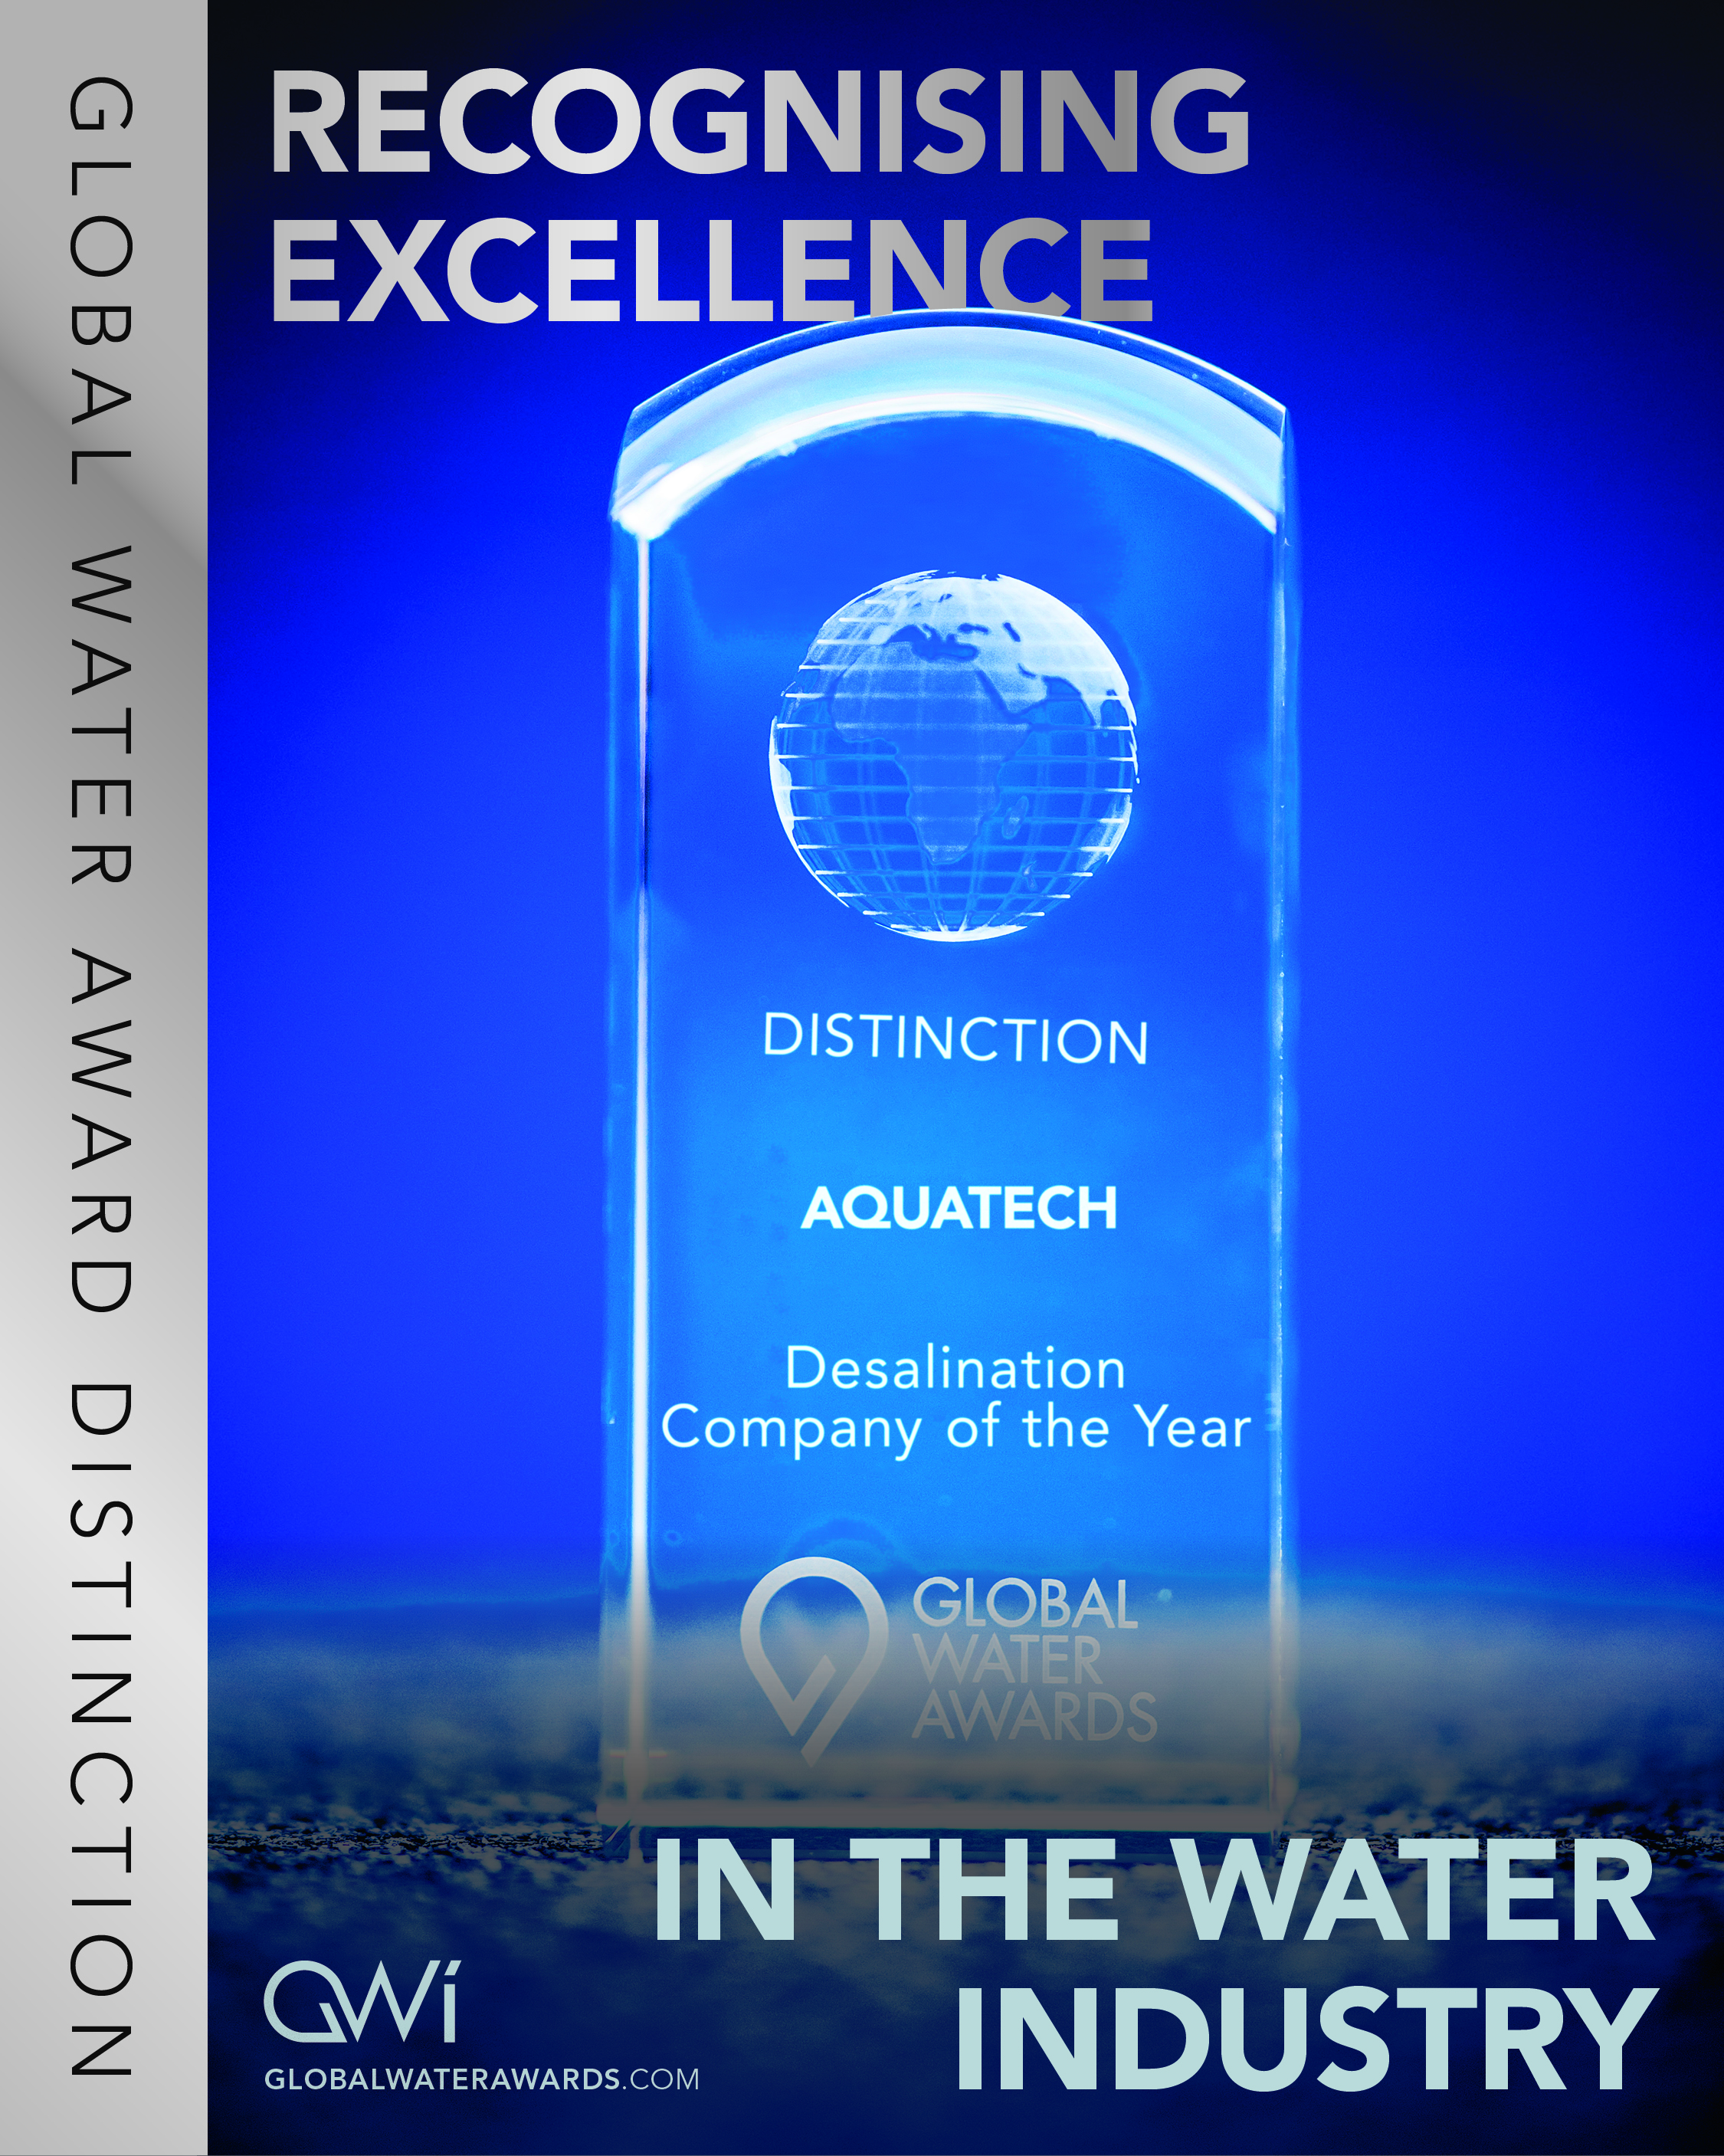 Desal Company Distinction trophy - with text